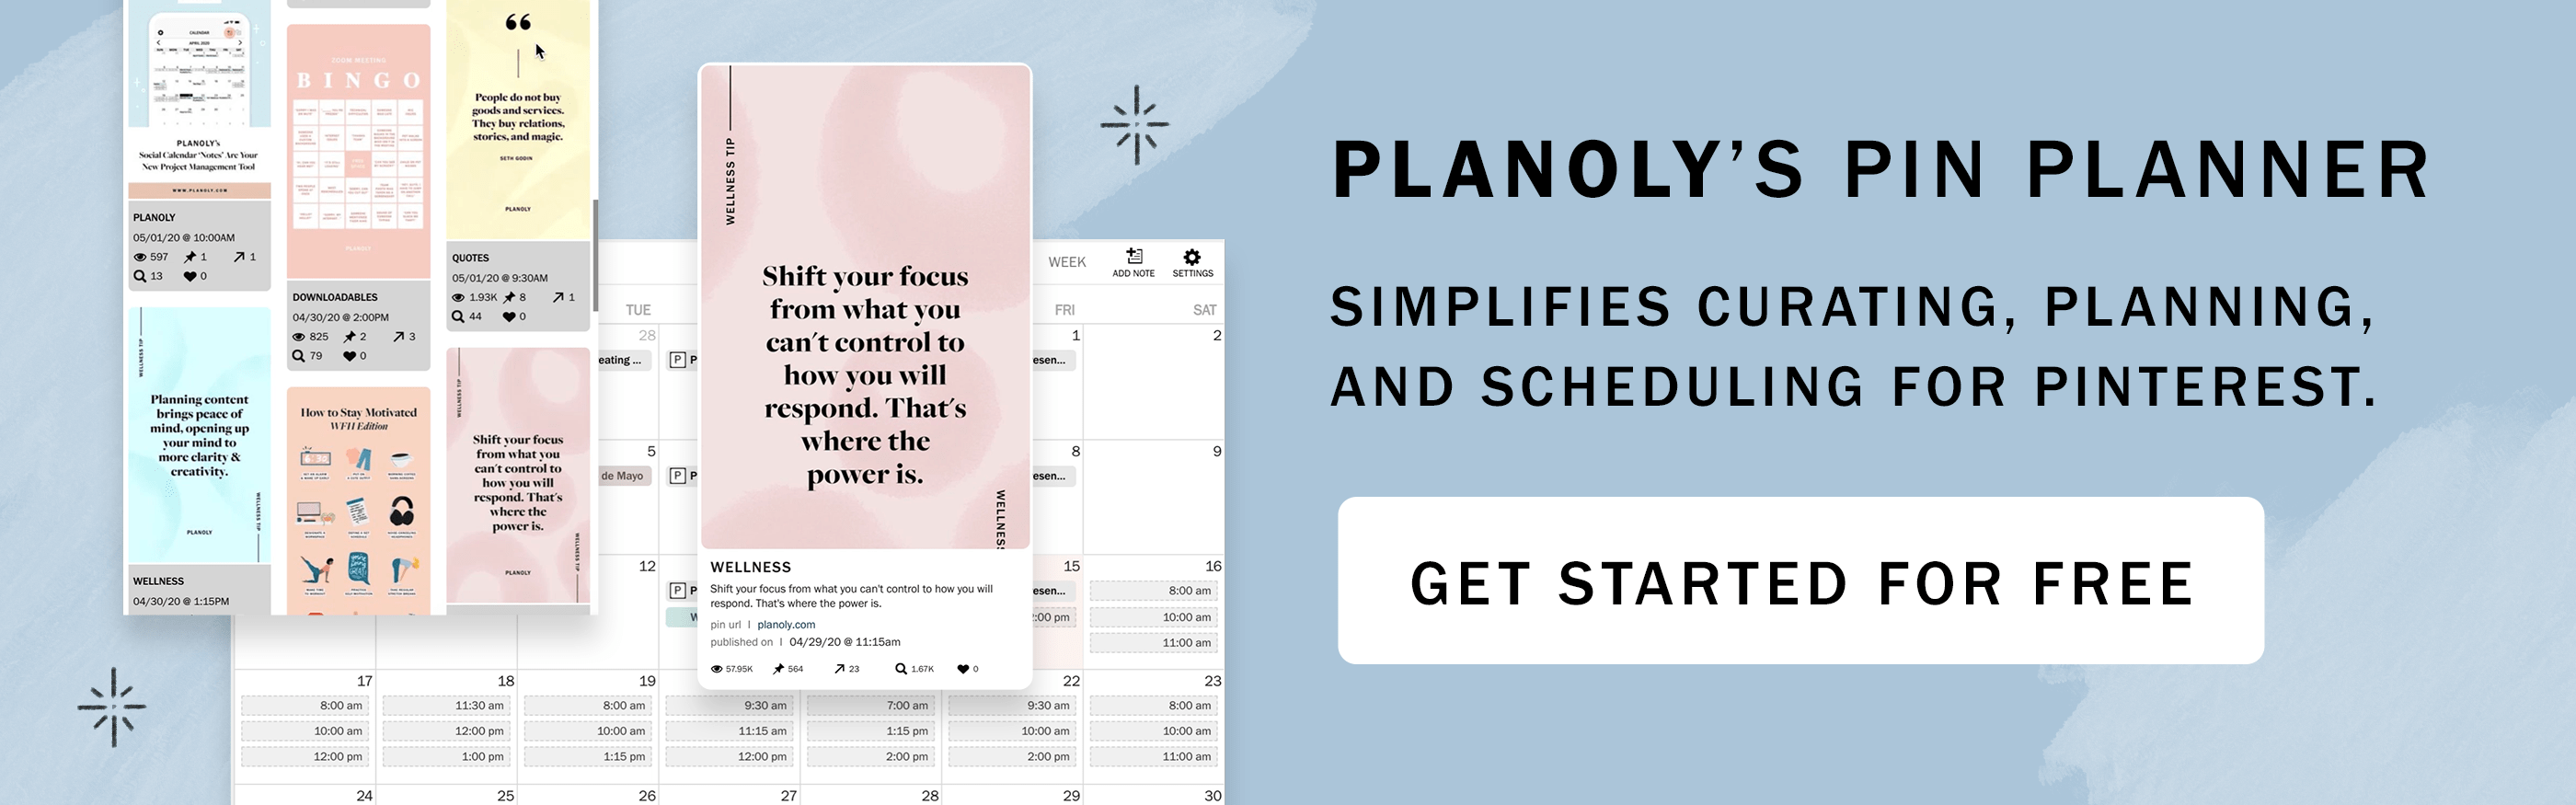 PLANOLY-Blog-Post-How-to-Use-Pinterest-CTA-Image